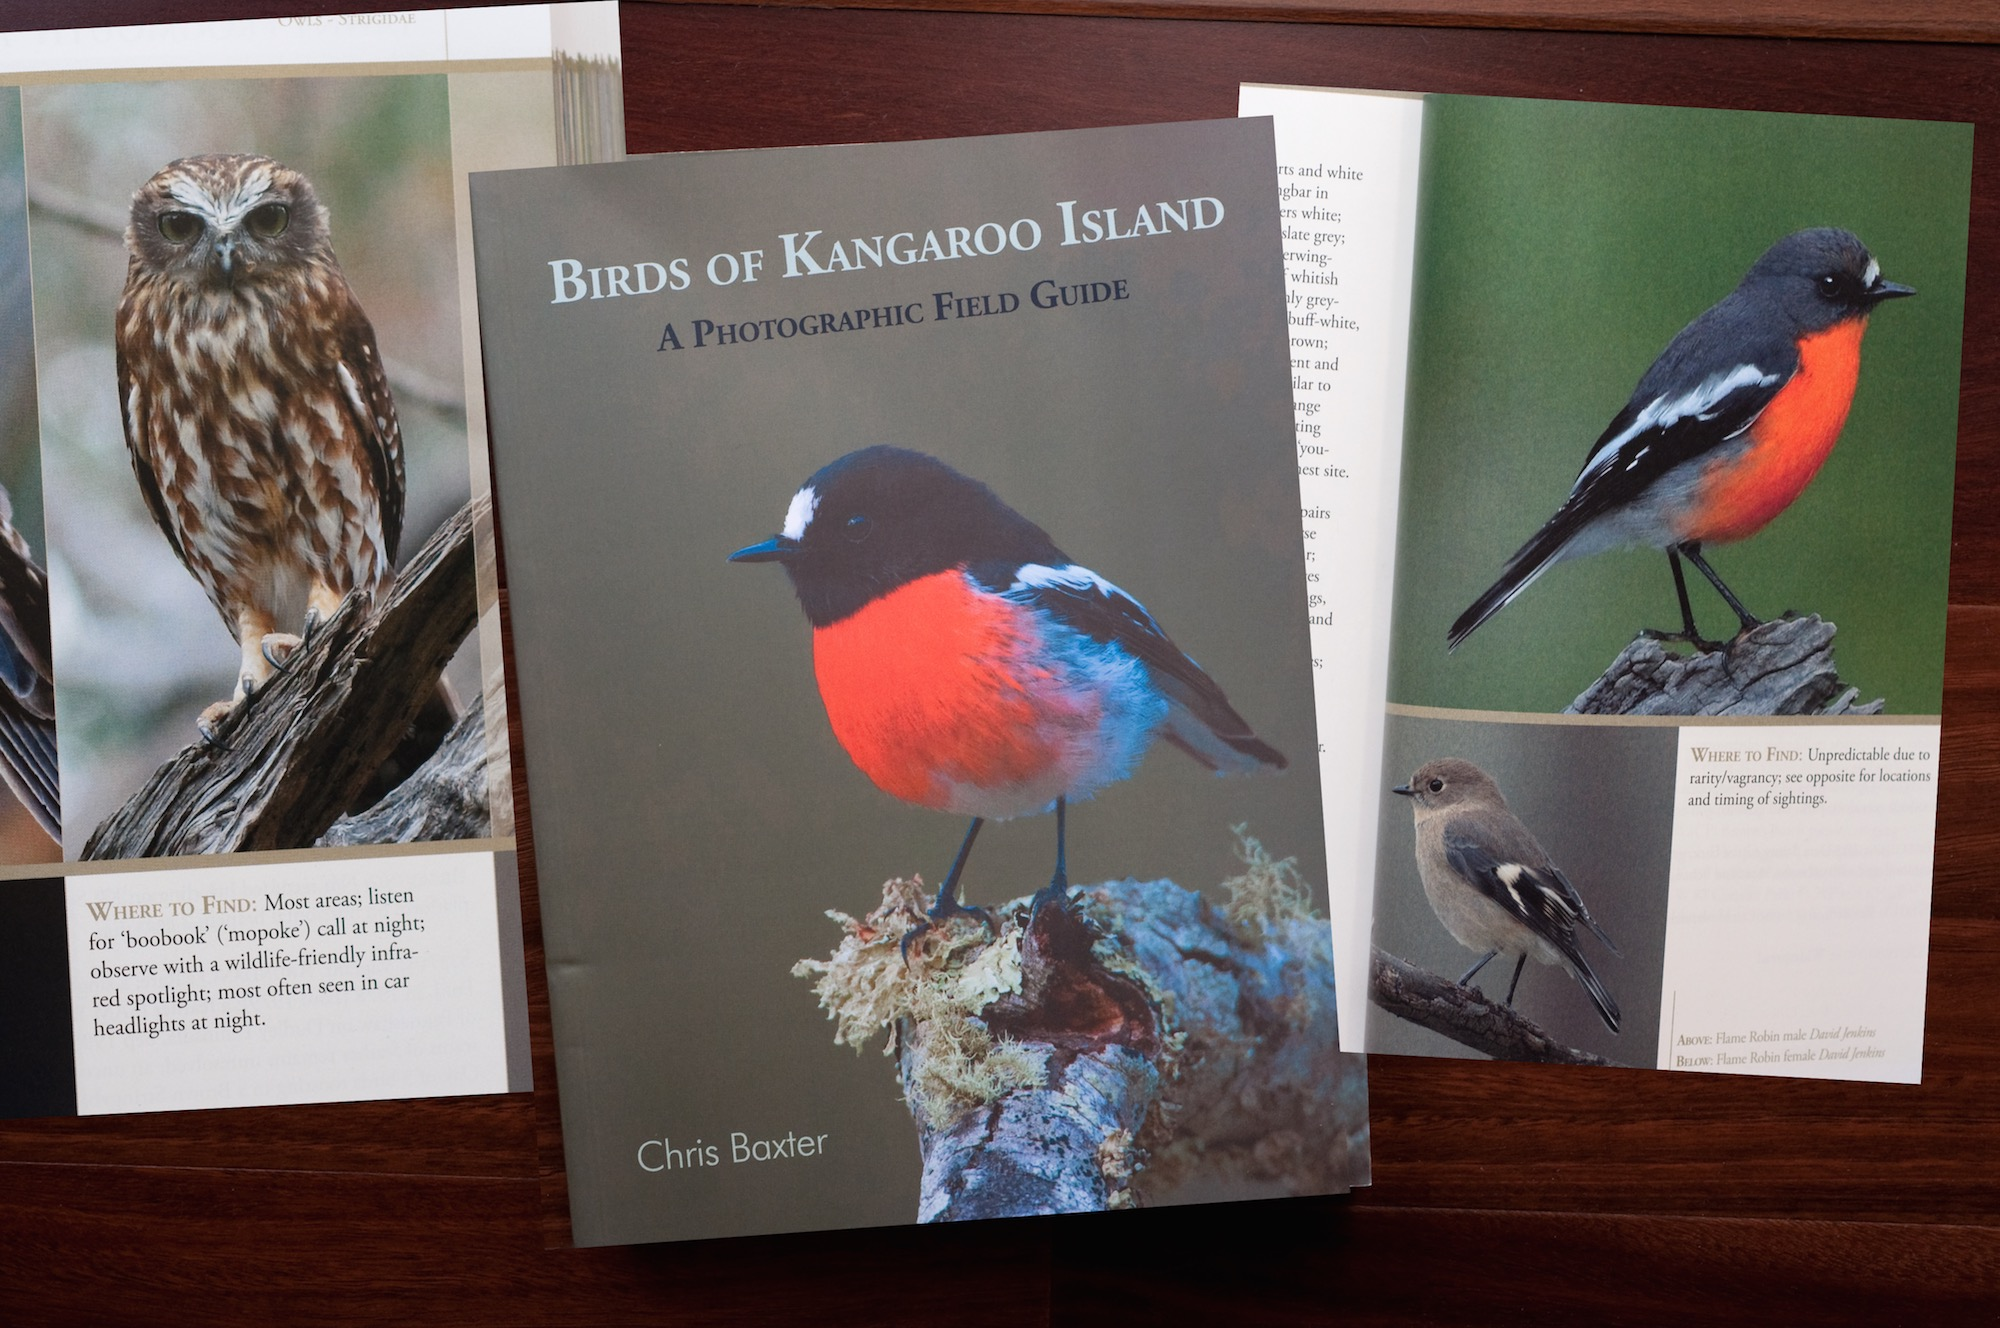 Birds of Kangaroo Island A Photographic Field Guide